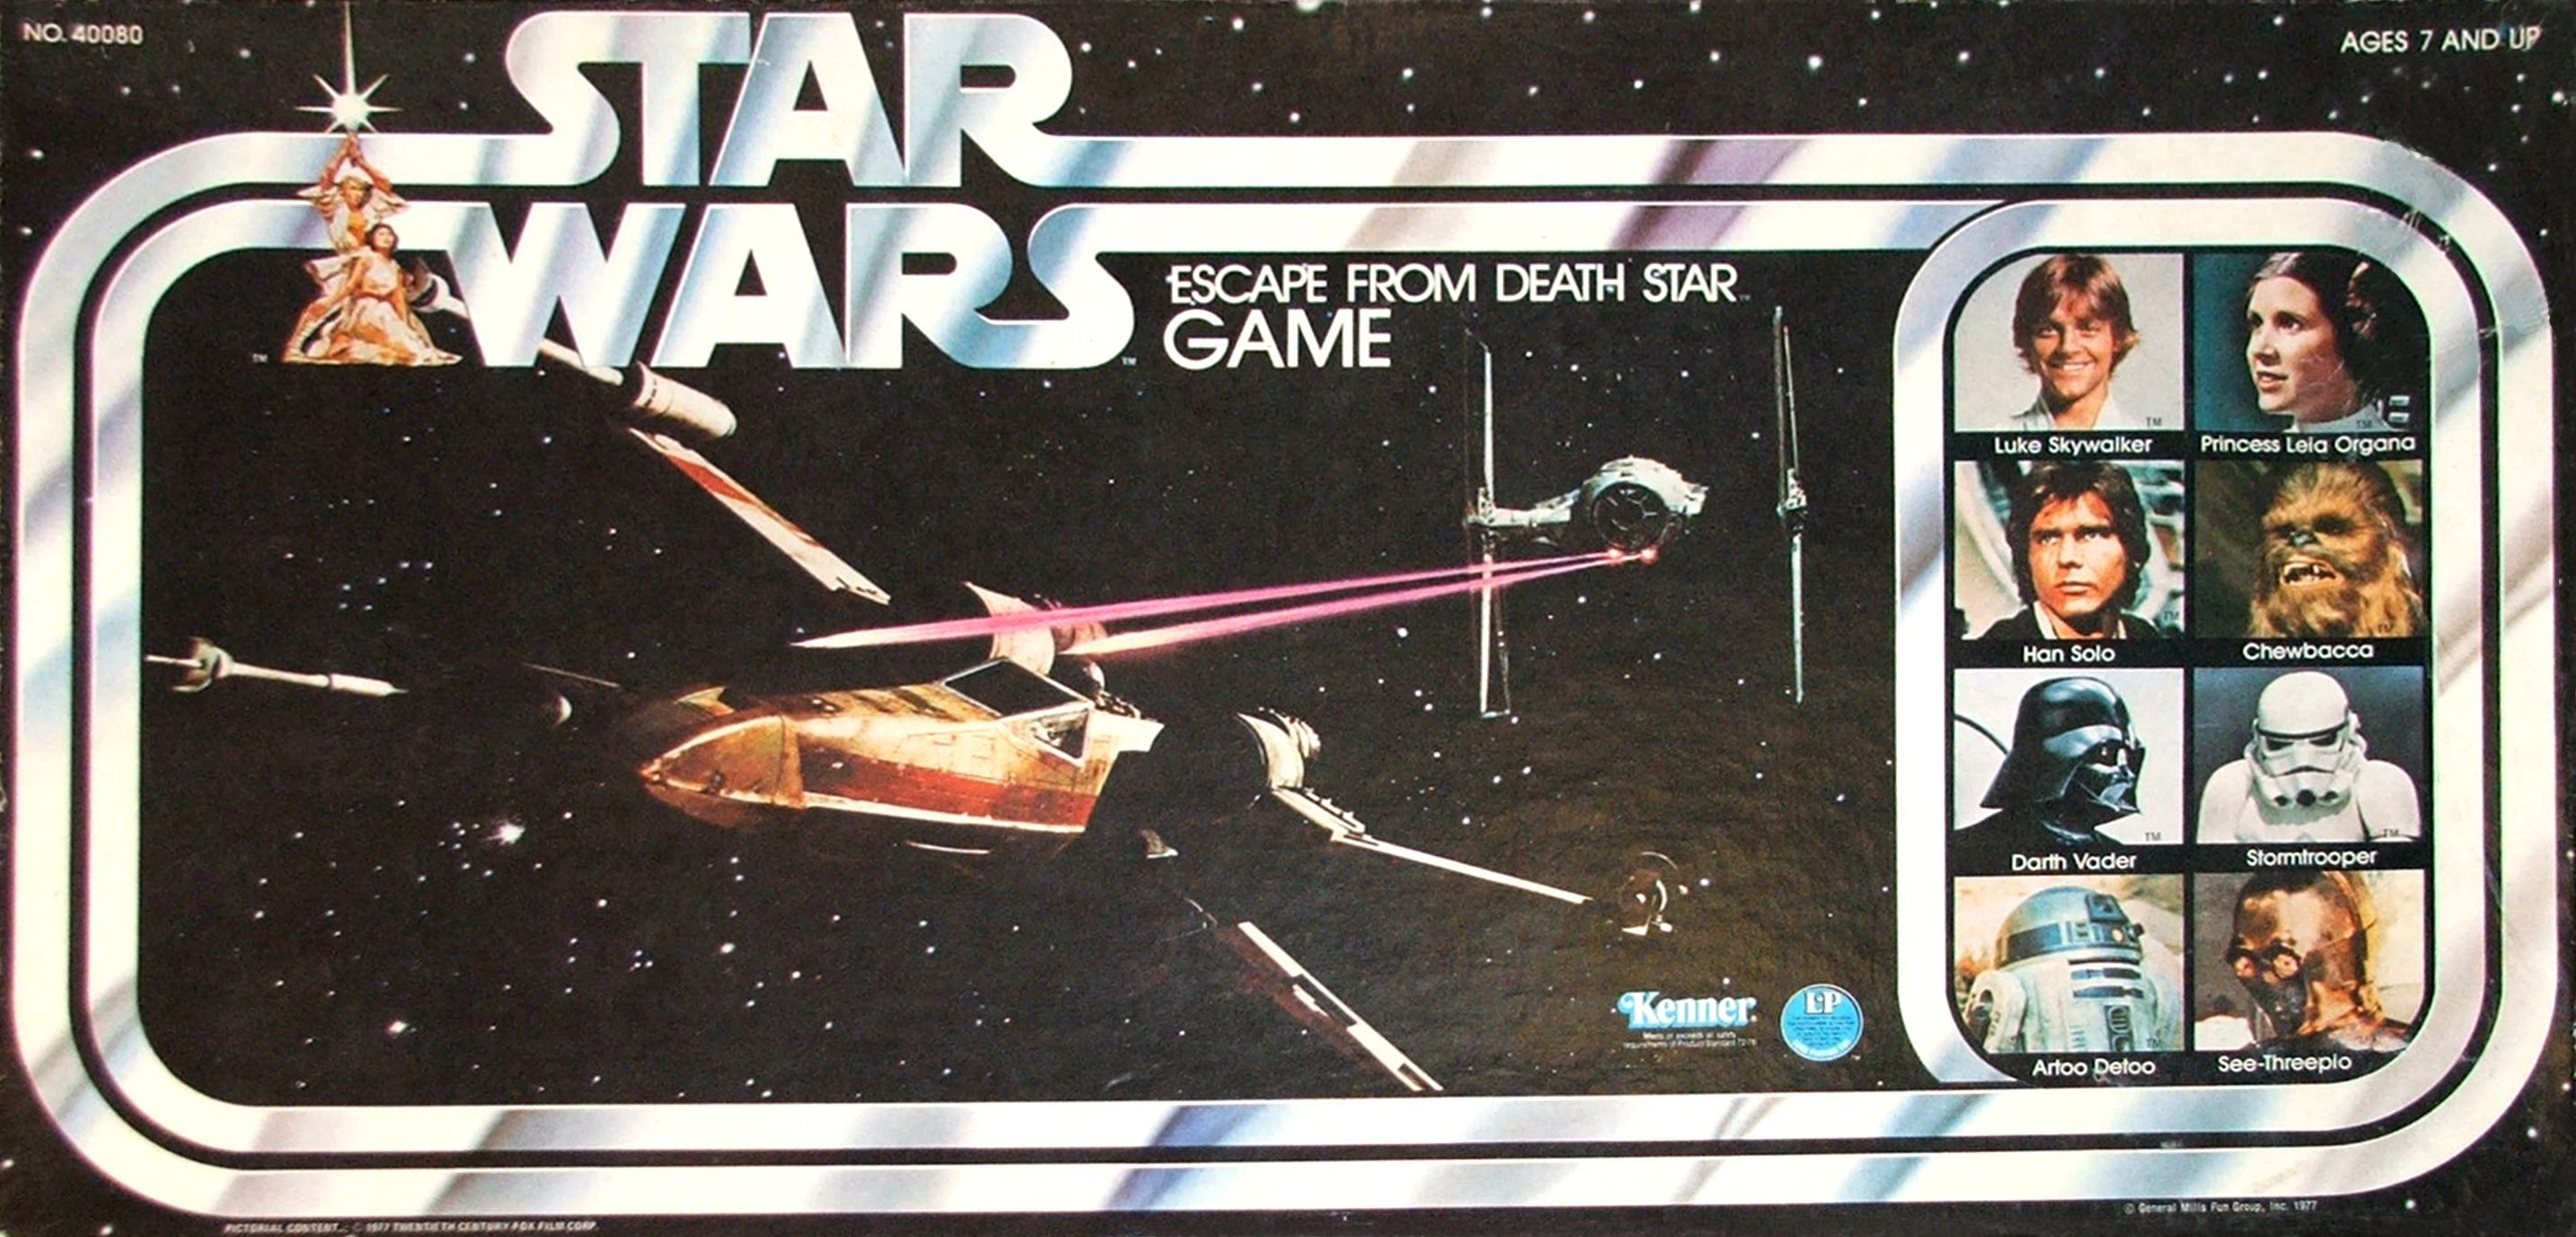 Star Wars:  Escape From Death Star Game